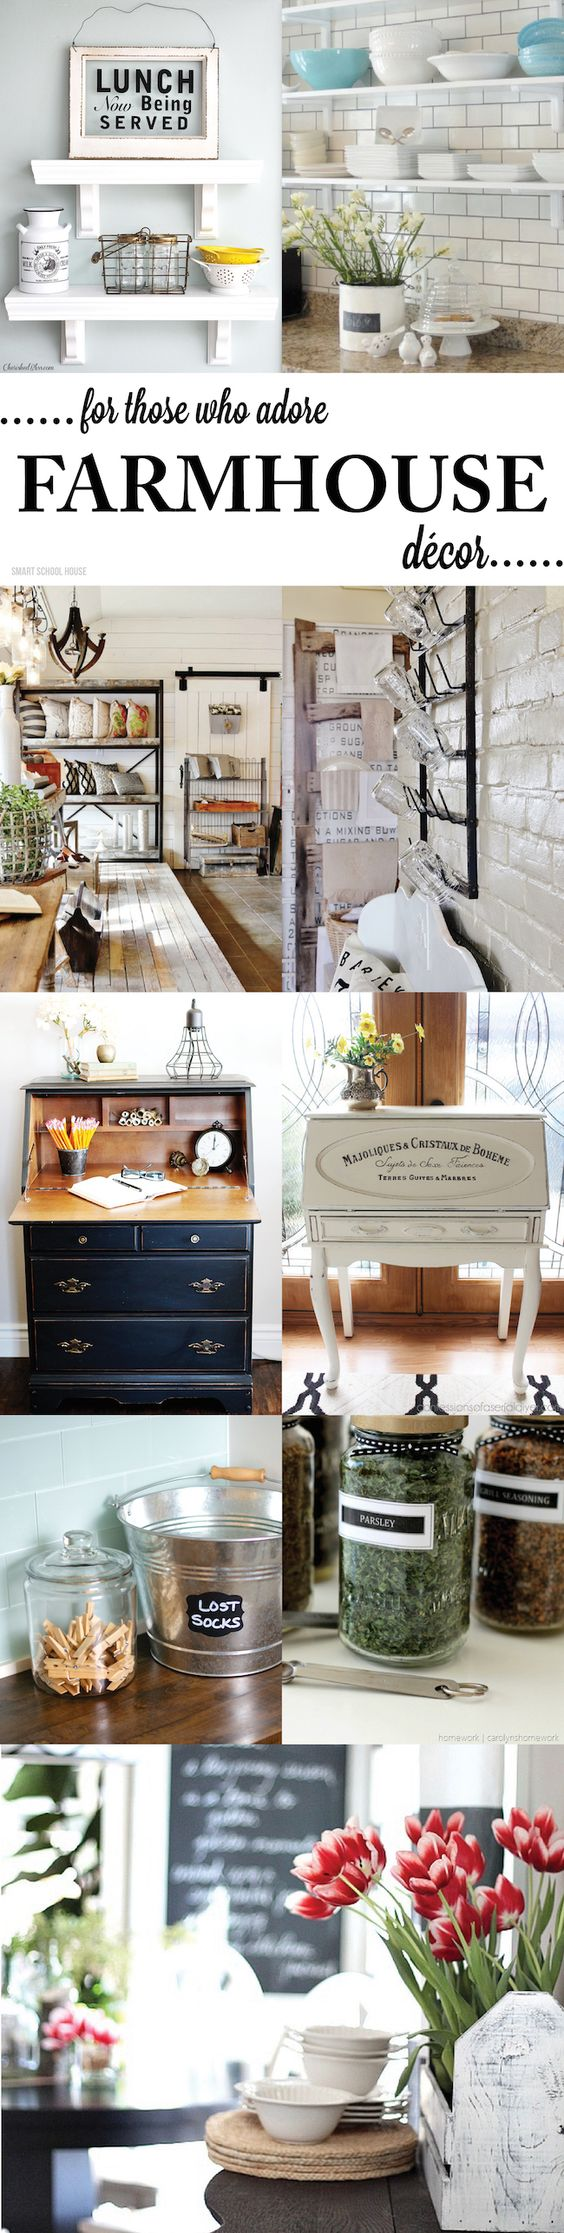 farmhouse decor farmhouse and decor on pinterest